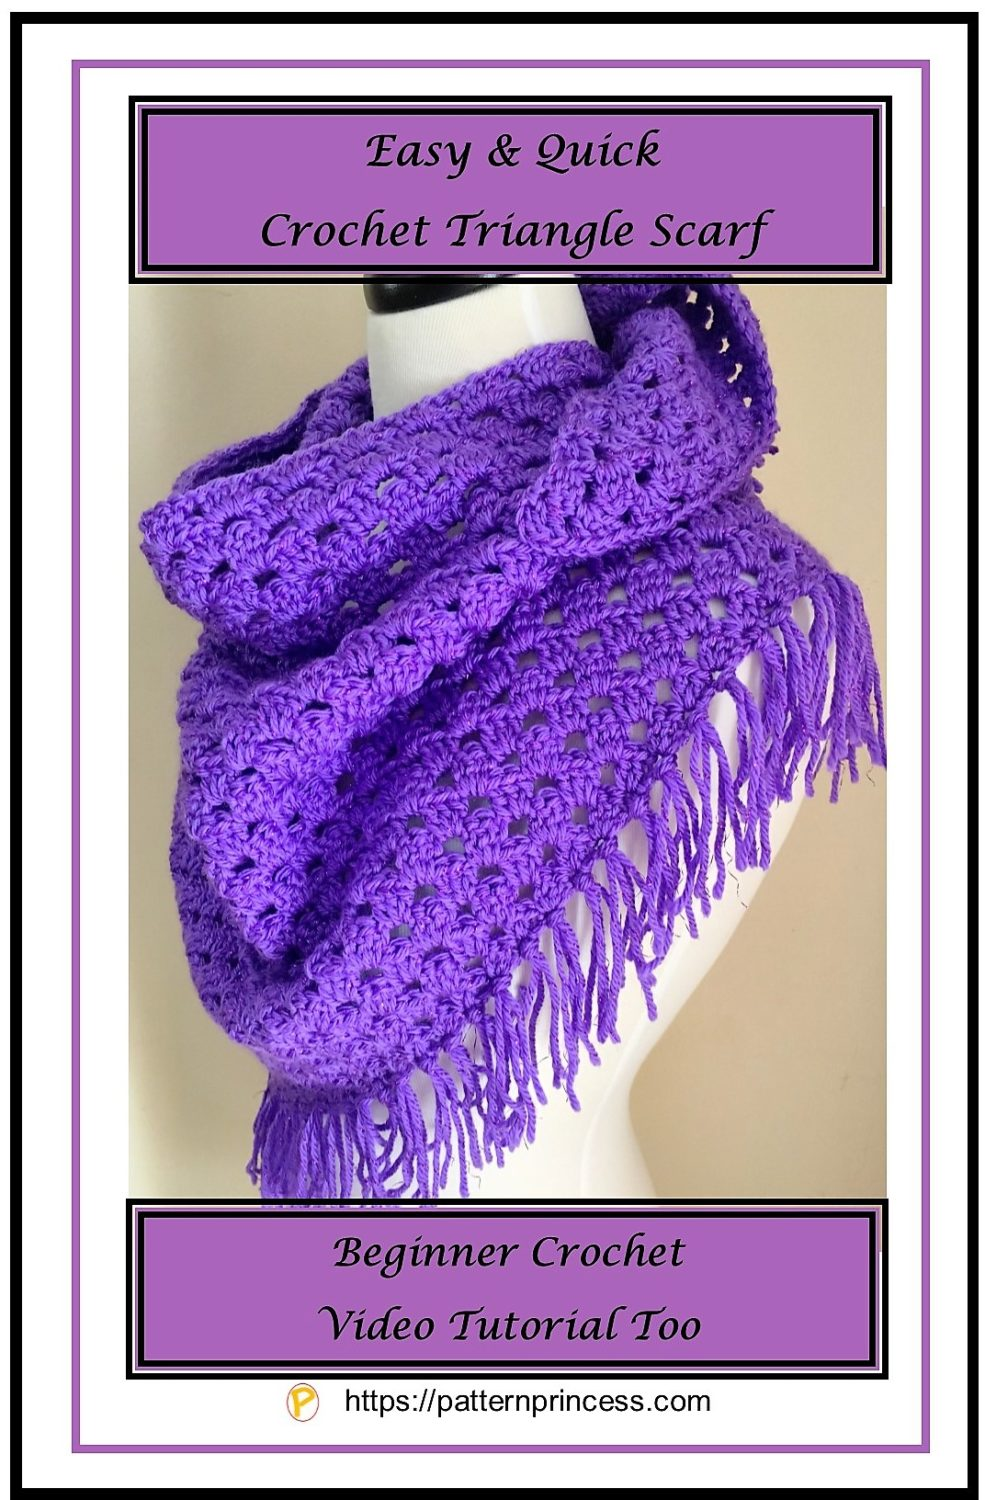 Easy and Quick Crochet Triangle Scarf 1 2